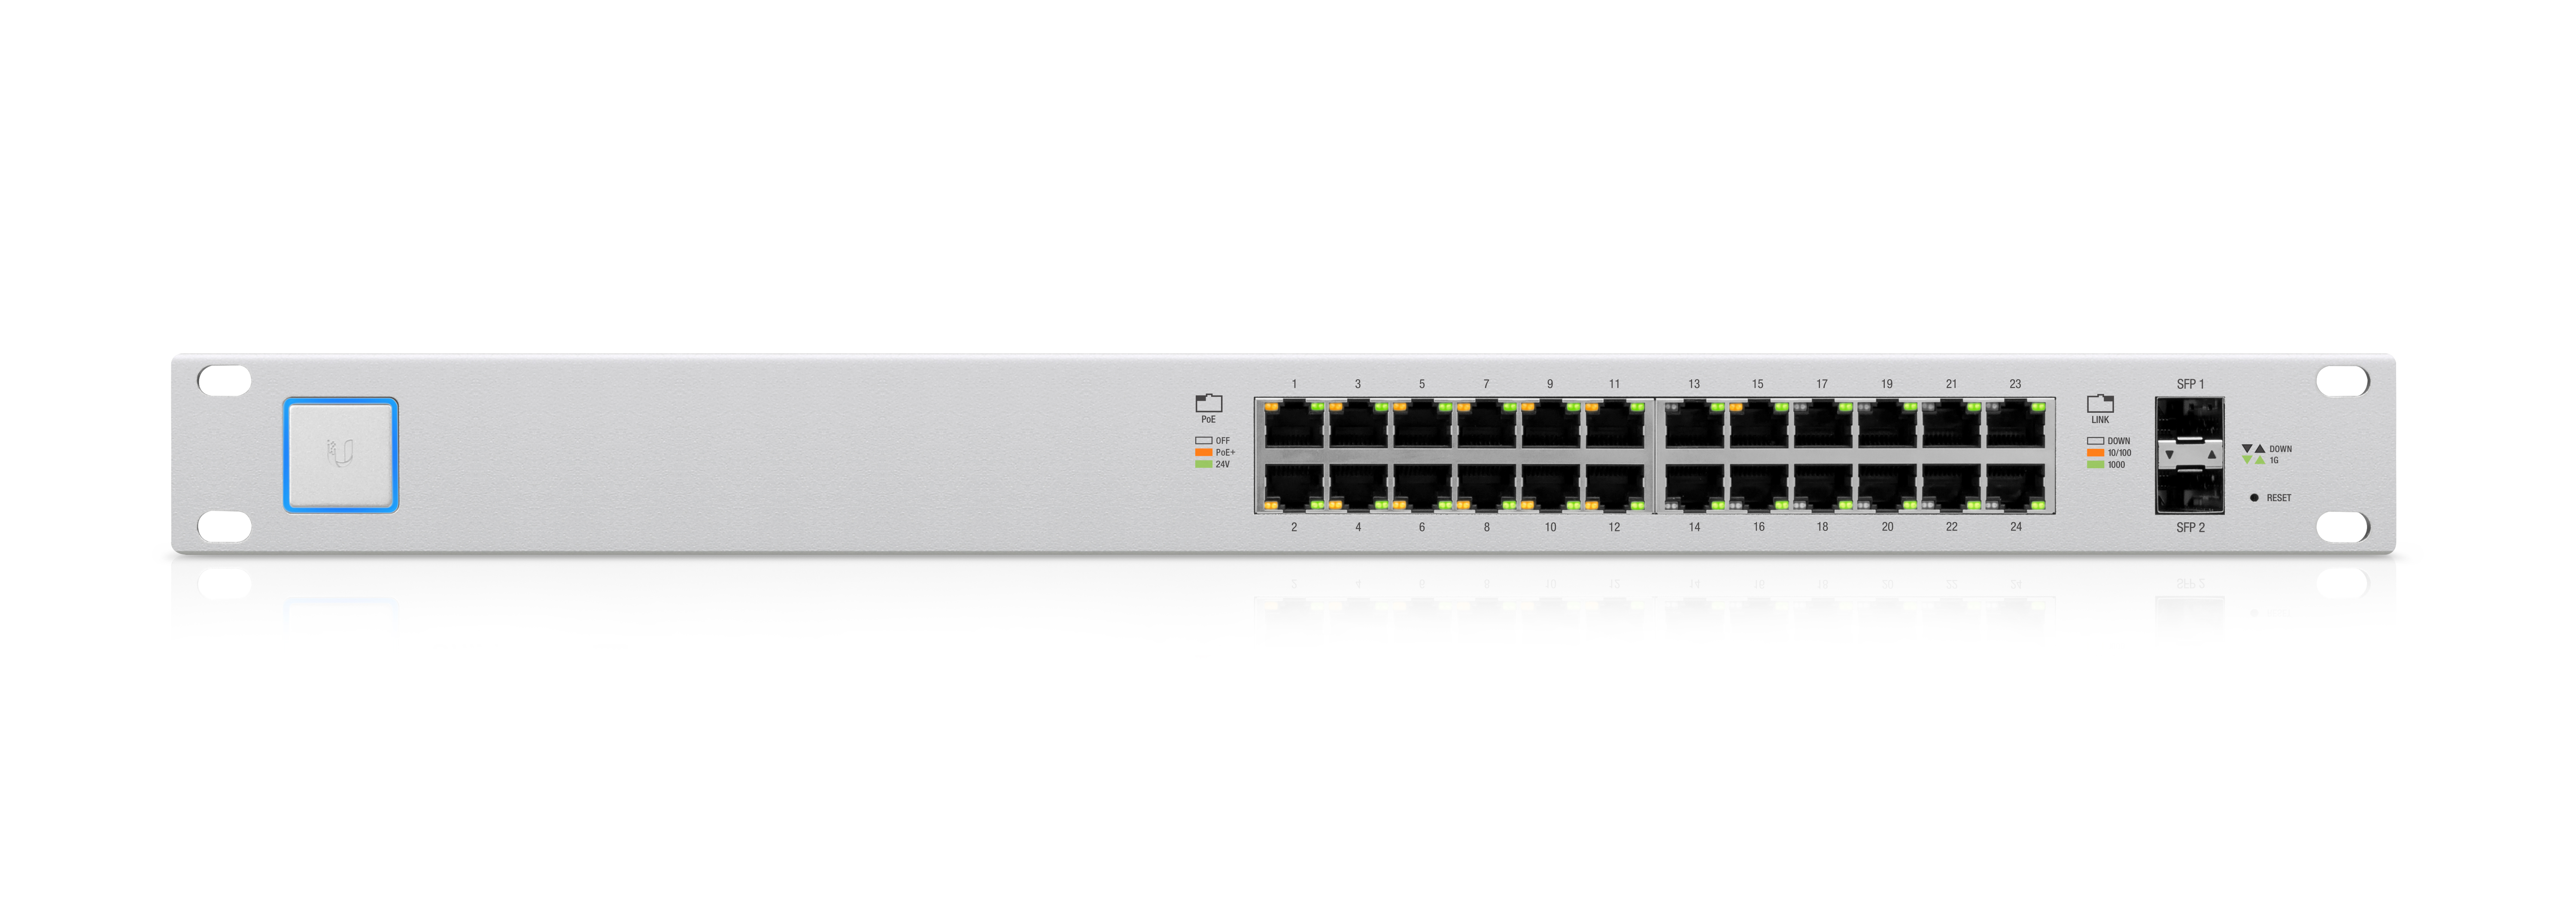 UBIQUITI UNIFI 24-PORT/2 SFP POE+ SWITCH (250W)